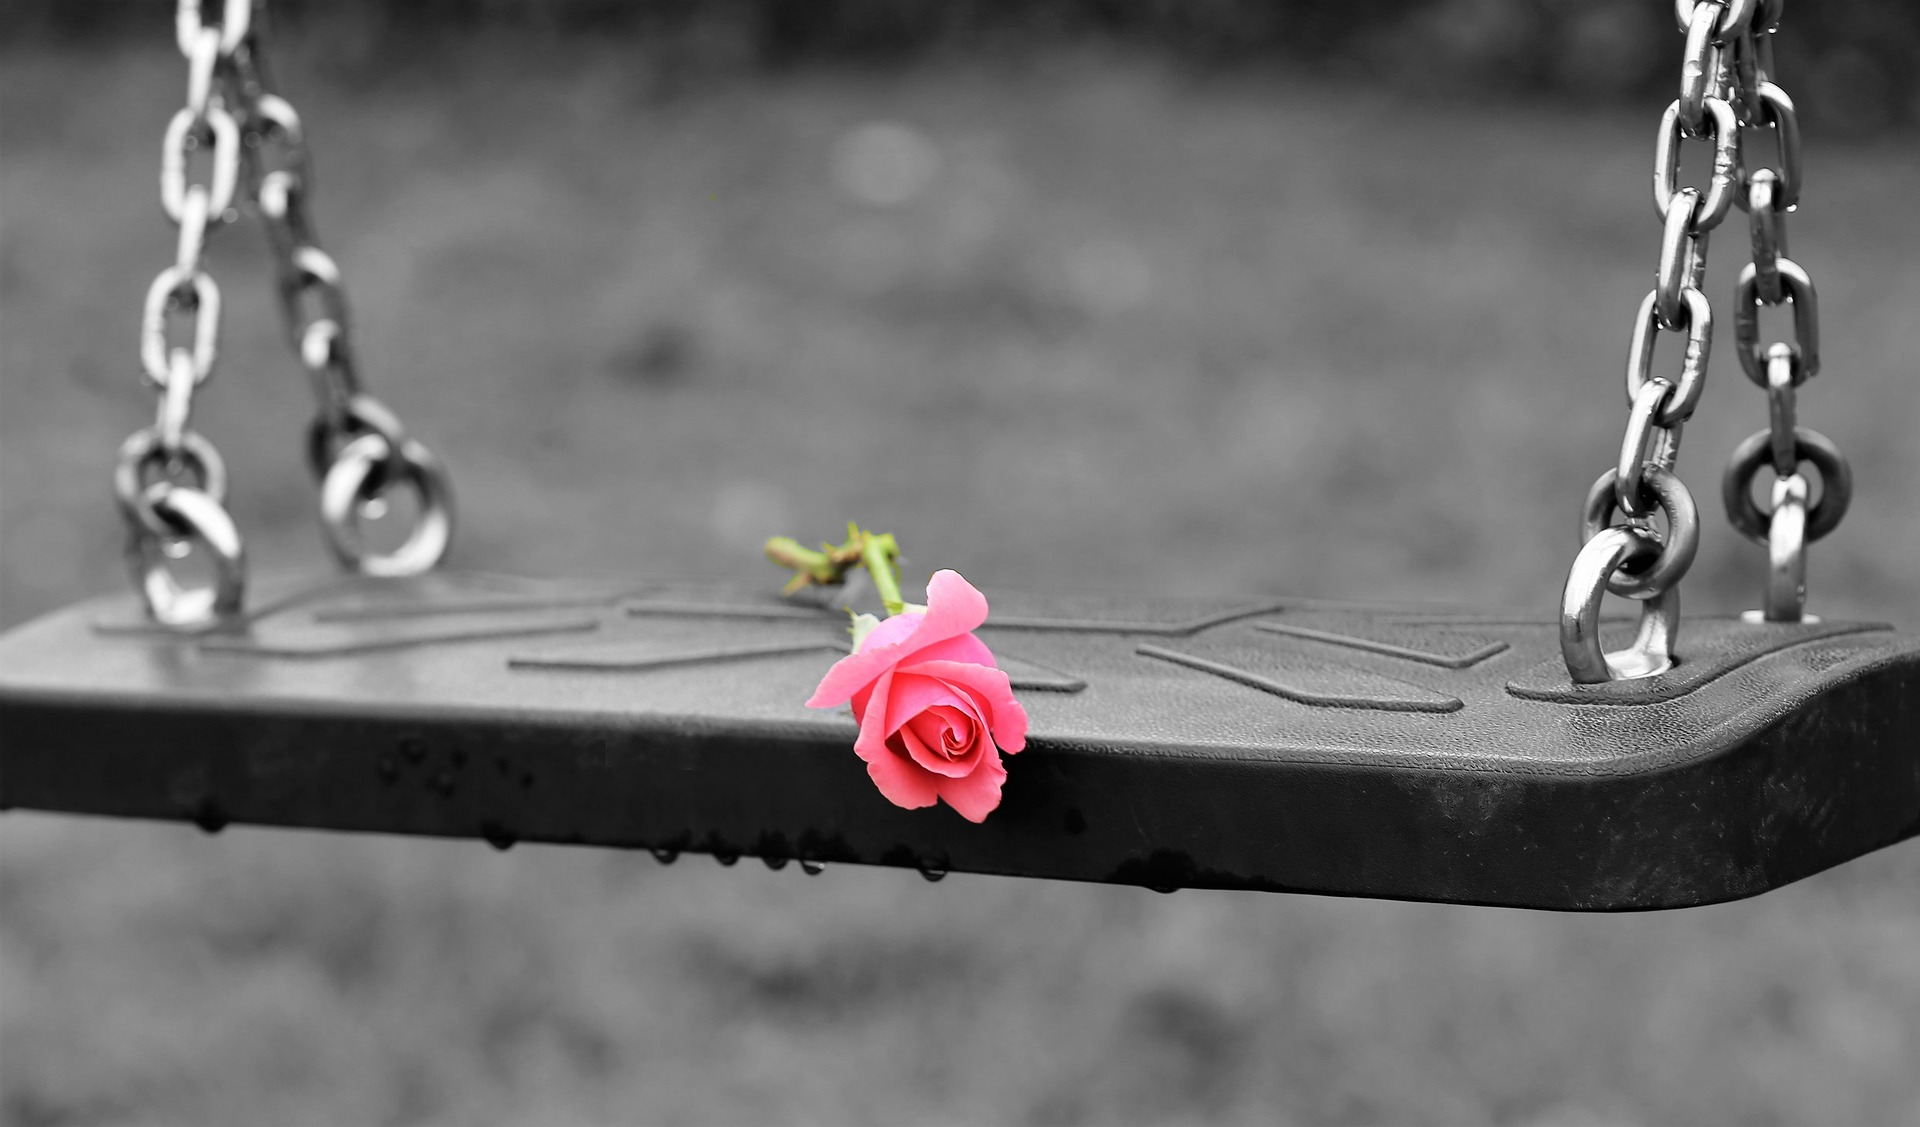 pink-rose-on-empty-swing-3656894_1920.jpg